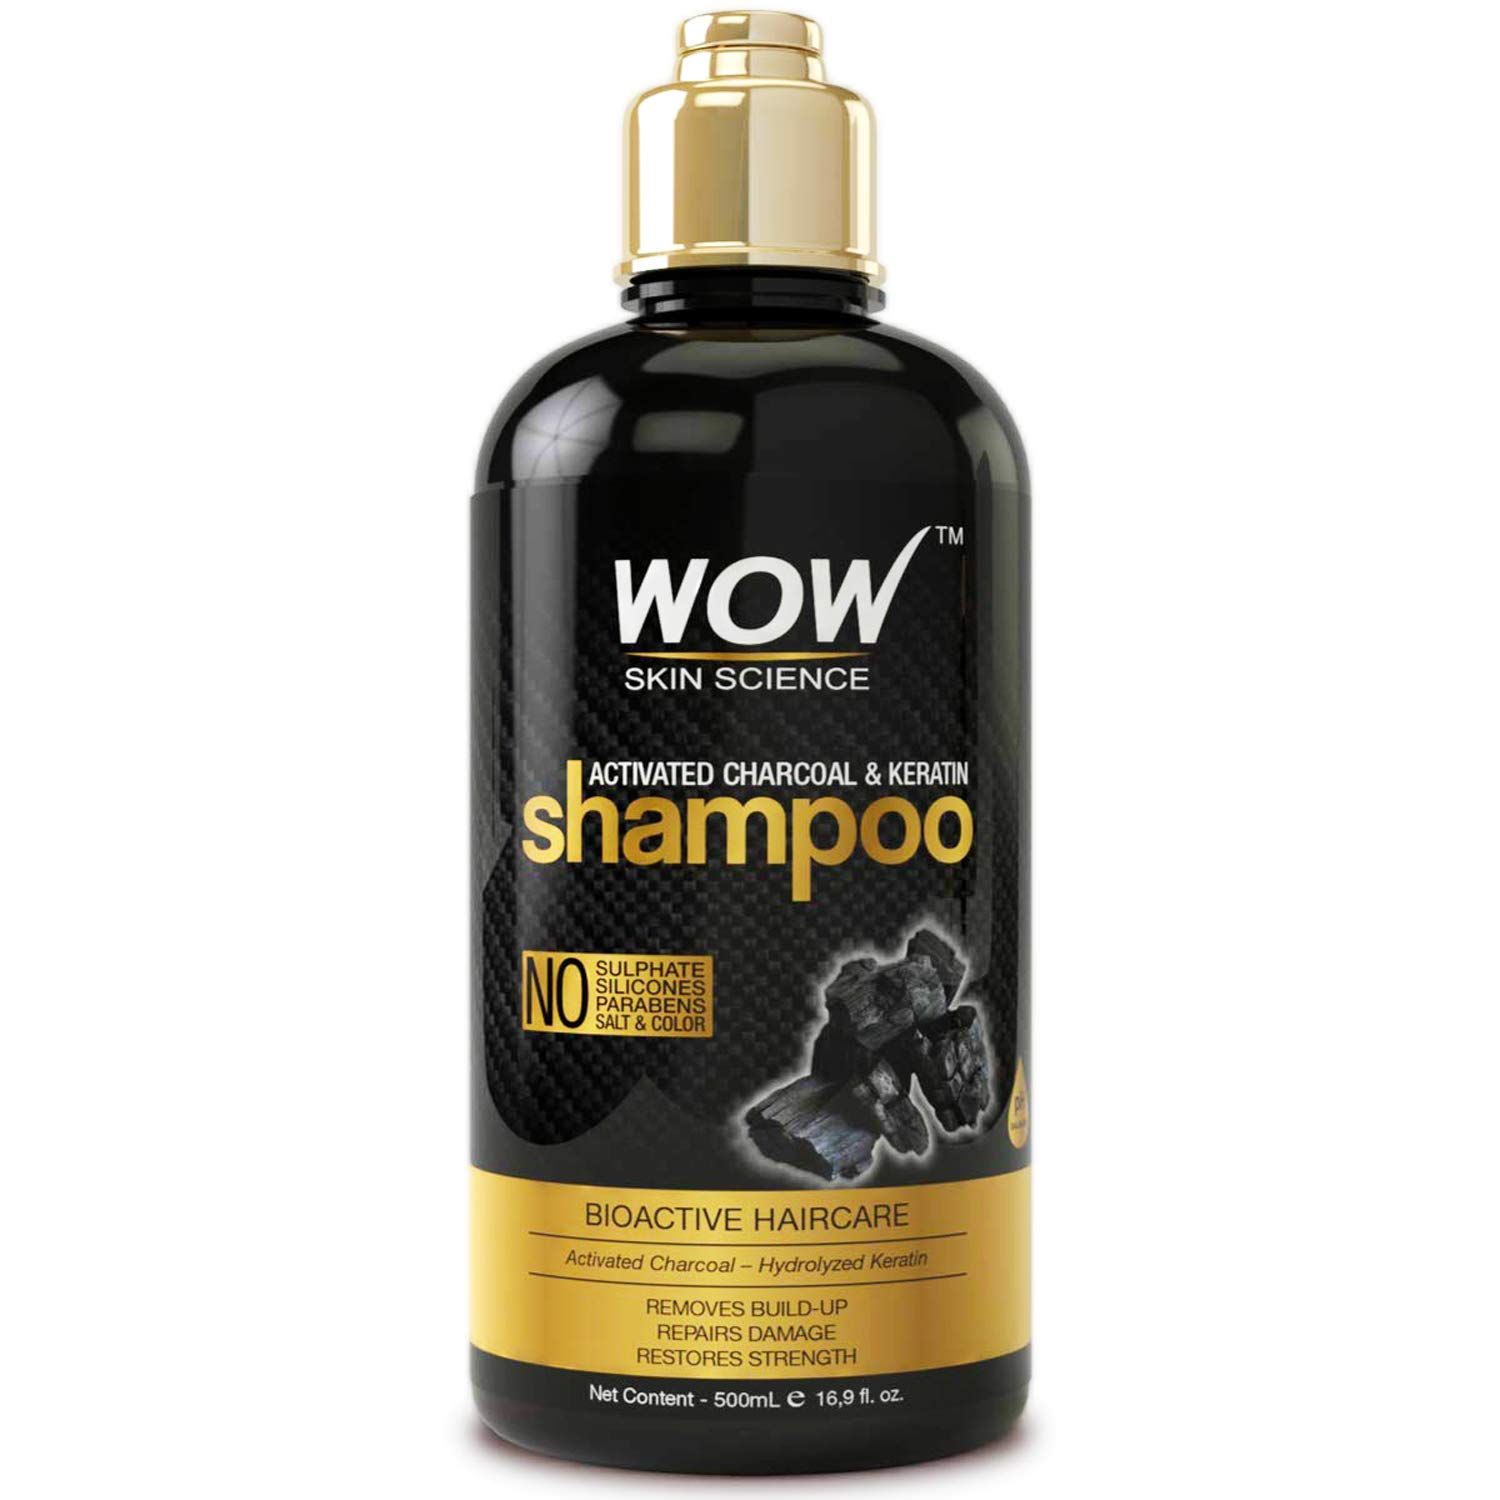 WOW Activated Charcoal Keratin Shampoo